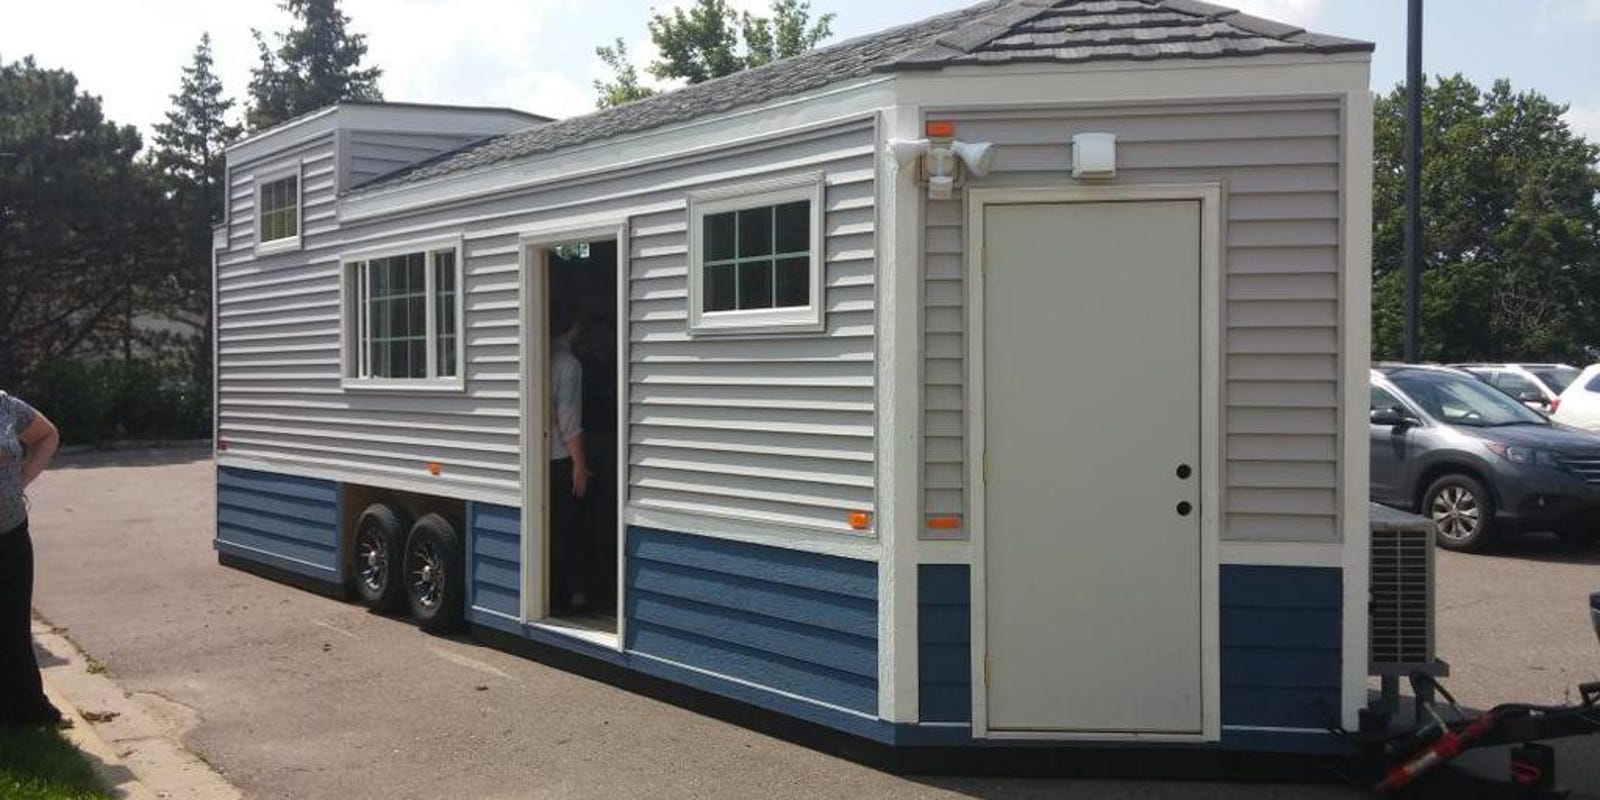 Tiny homes combine rv with house look and feel for 8 by 16 tiny house